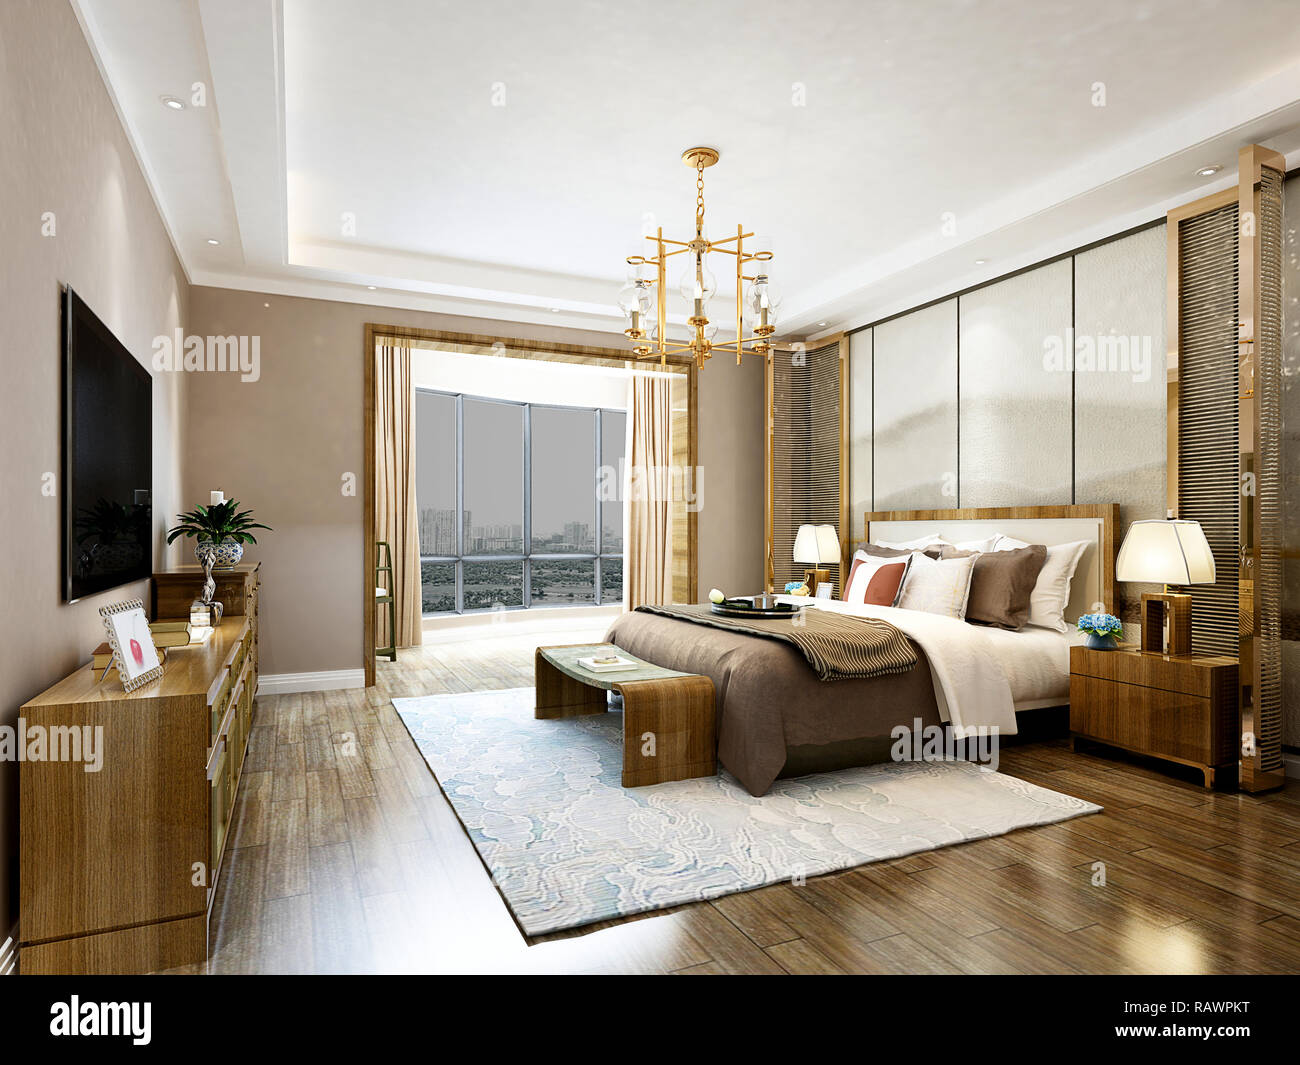 3d Render Modern Luxury Hotel Room Stock Photo Alamy